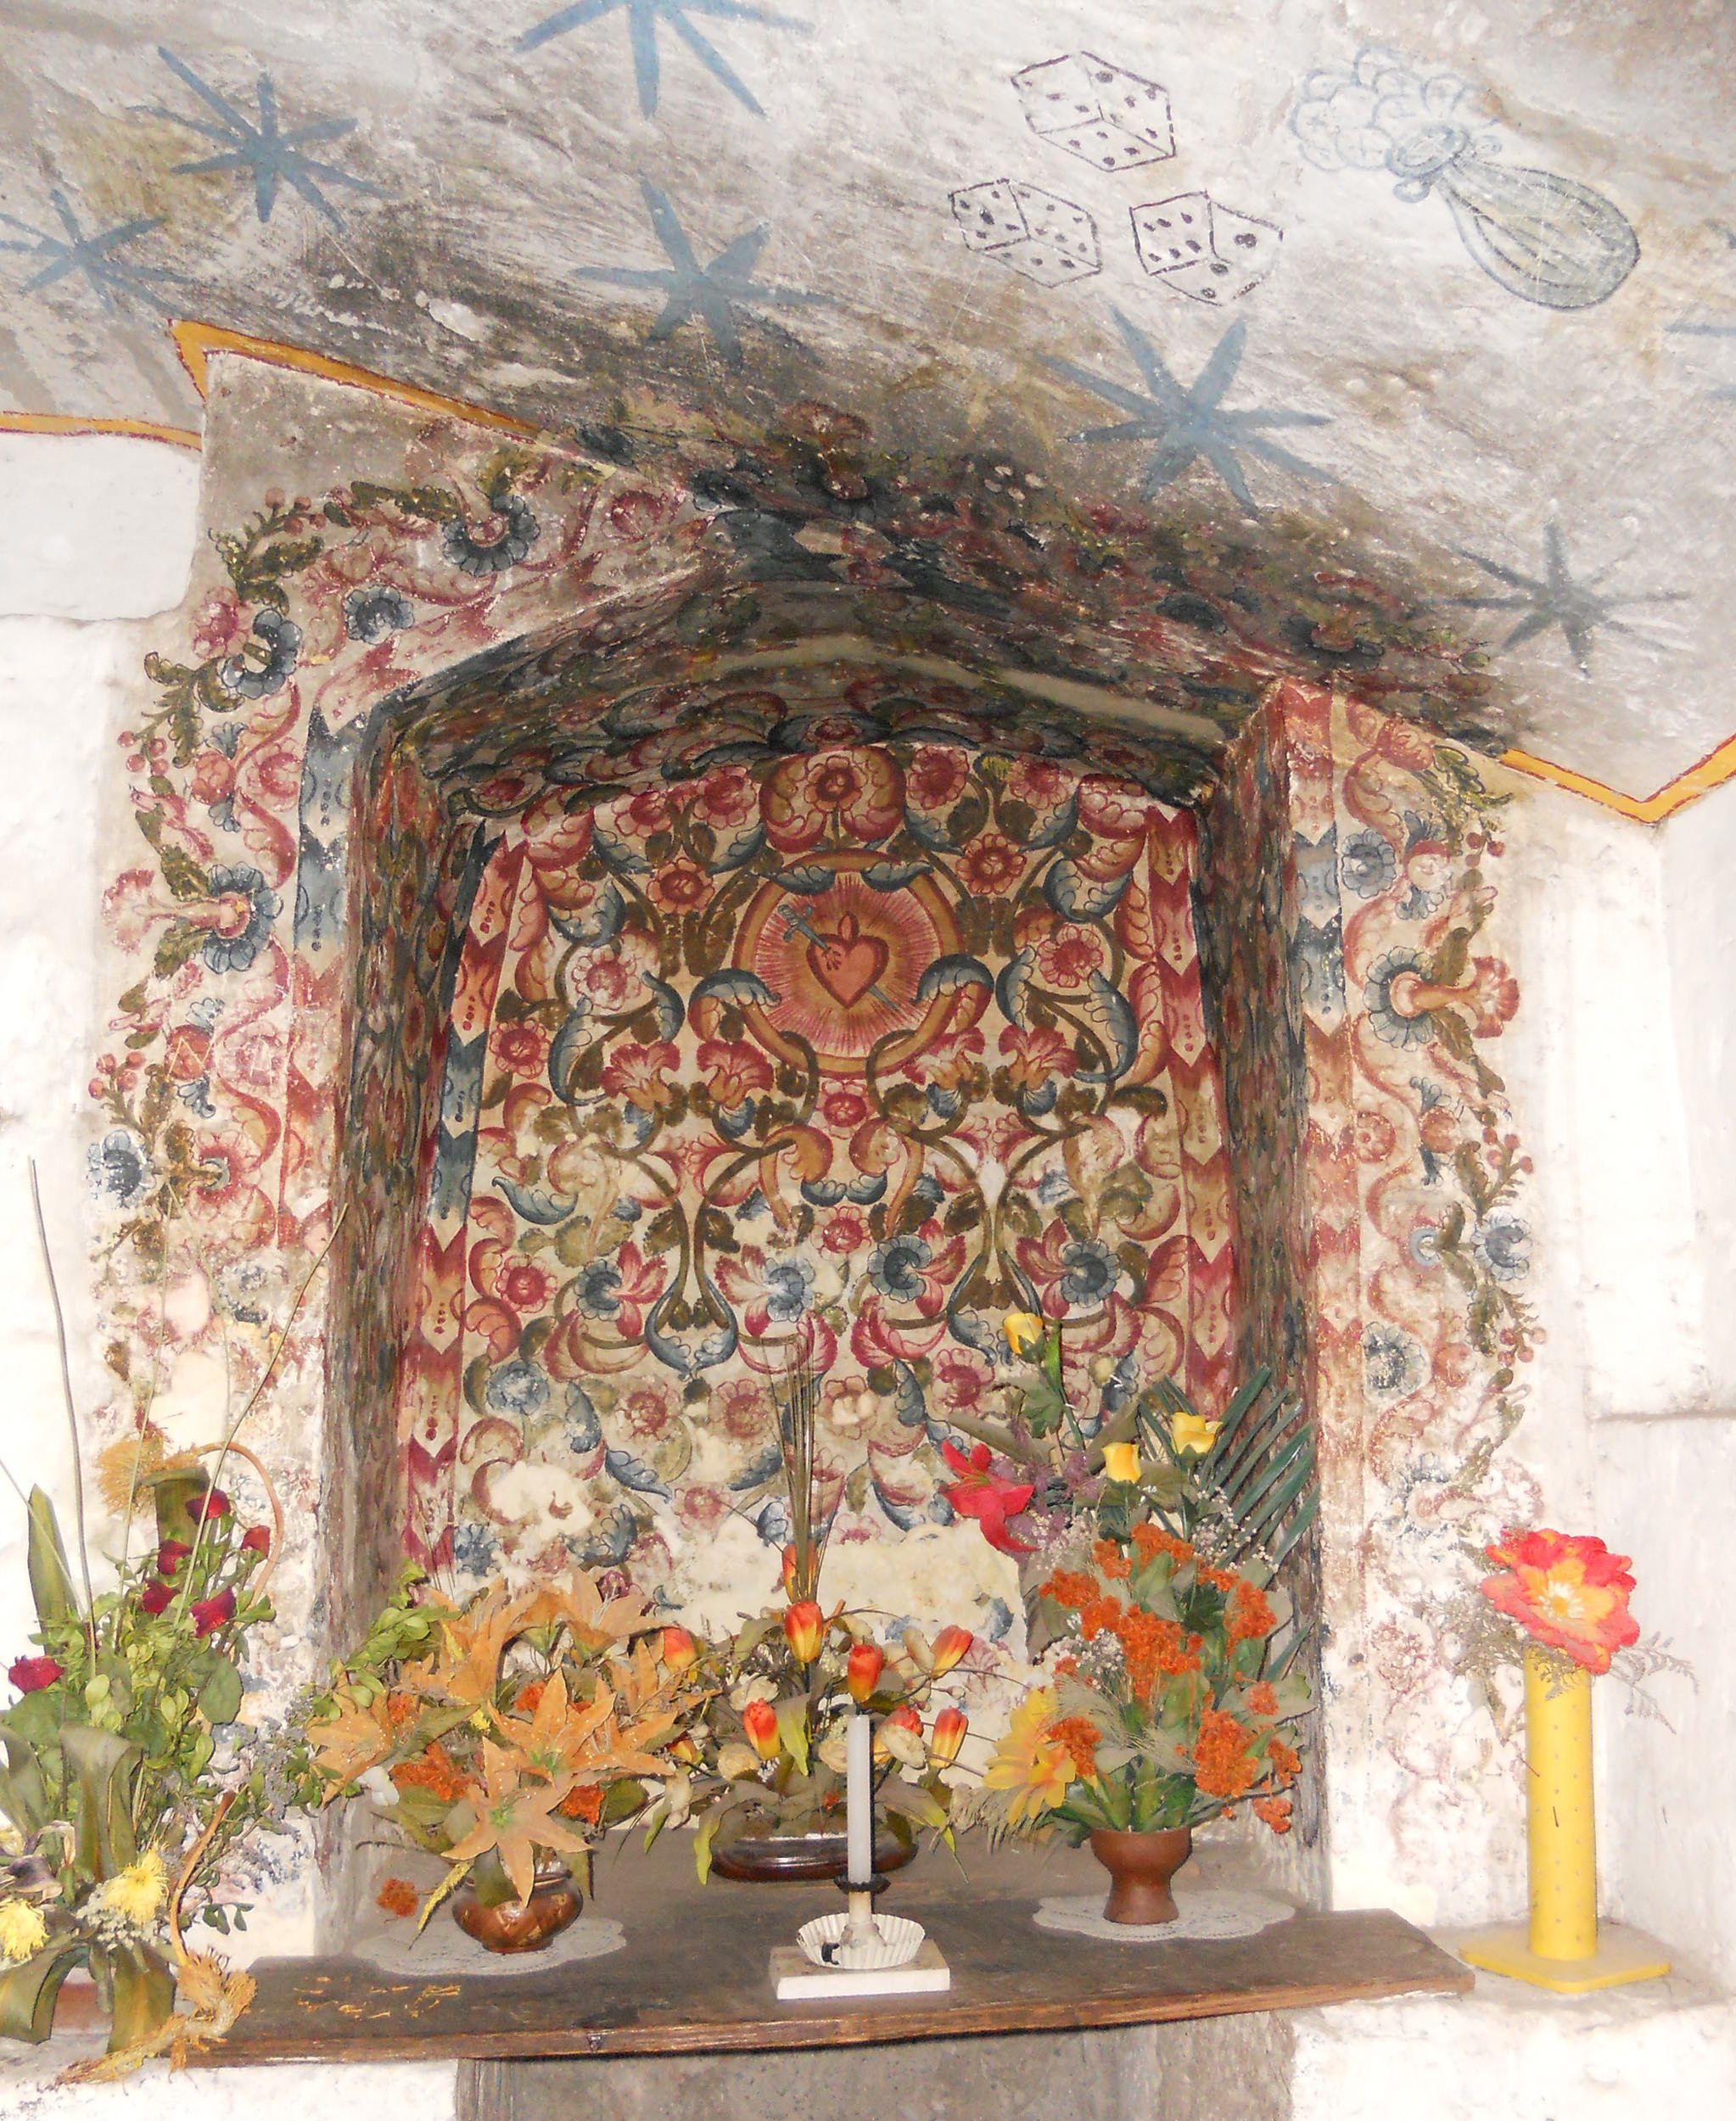 Fig. 6 Niche with painted floral decorations surrounding the Sacred Heart, 18th century, Convento de Santa Catalina, Arequipa. On the ceiling are later mural paintings (probably 19th century) depicting dice, referencing one of the Instruments of the Passion. Photo by author.